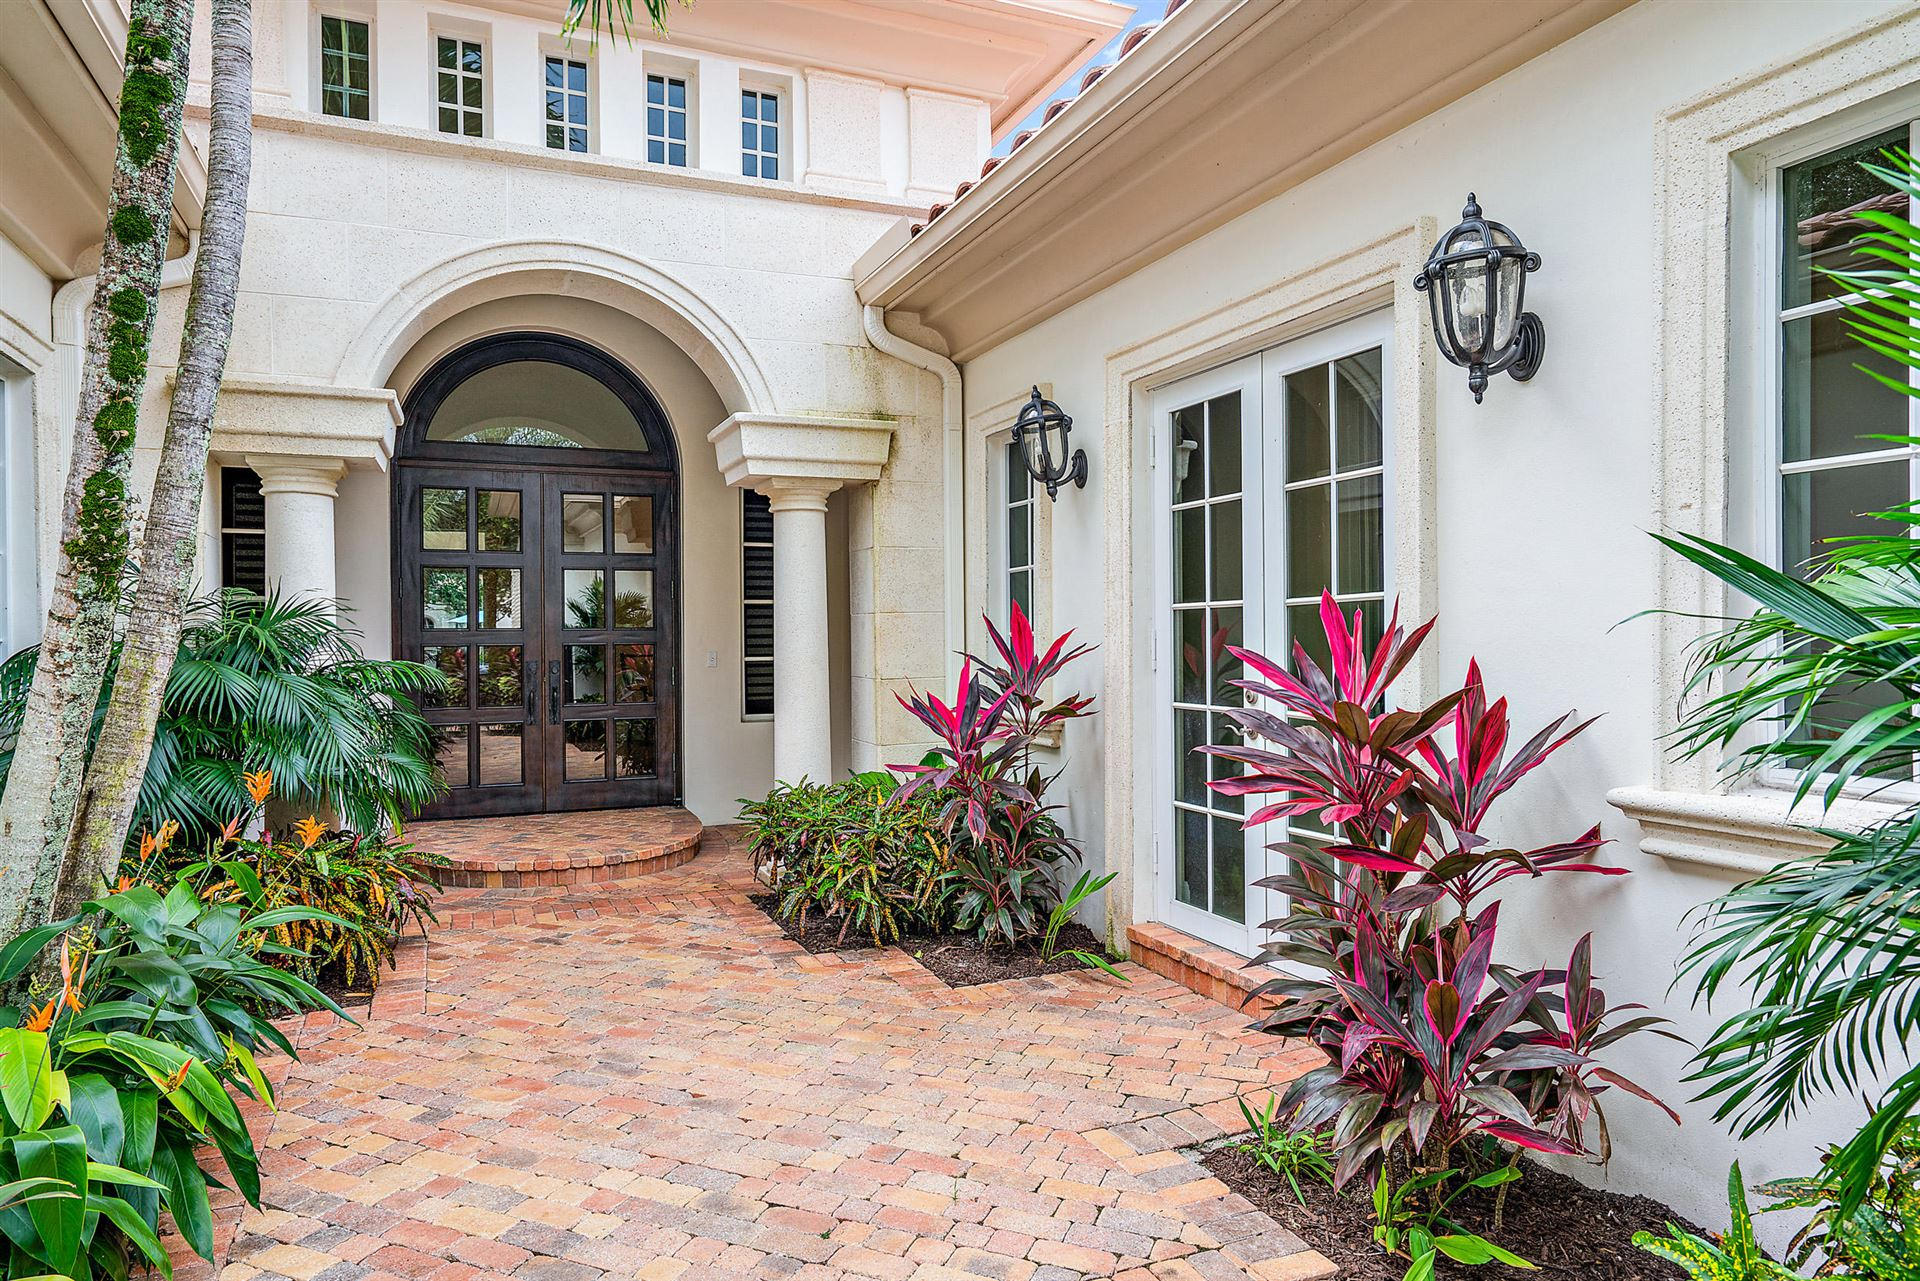 Photo of 11318 Caladium Lane, Palm Beach Gardens, FL 33418 (MLS # RX-10670330)